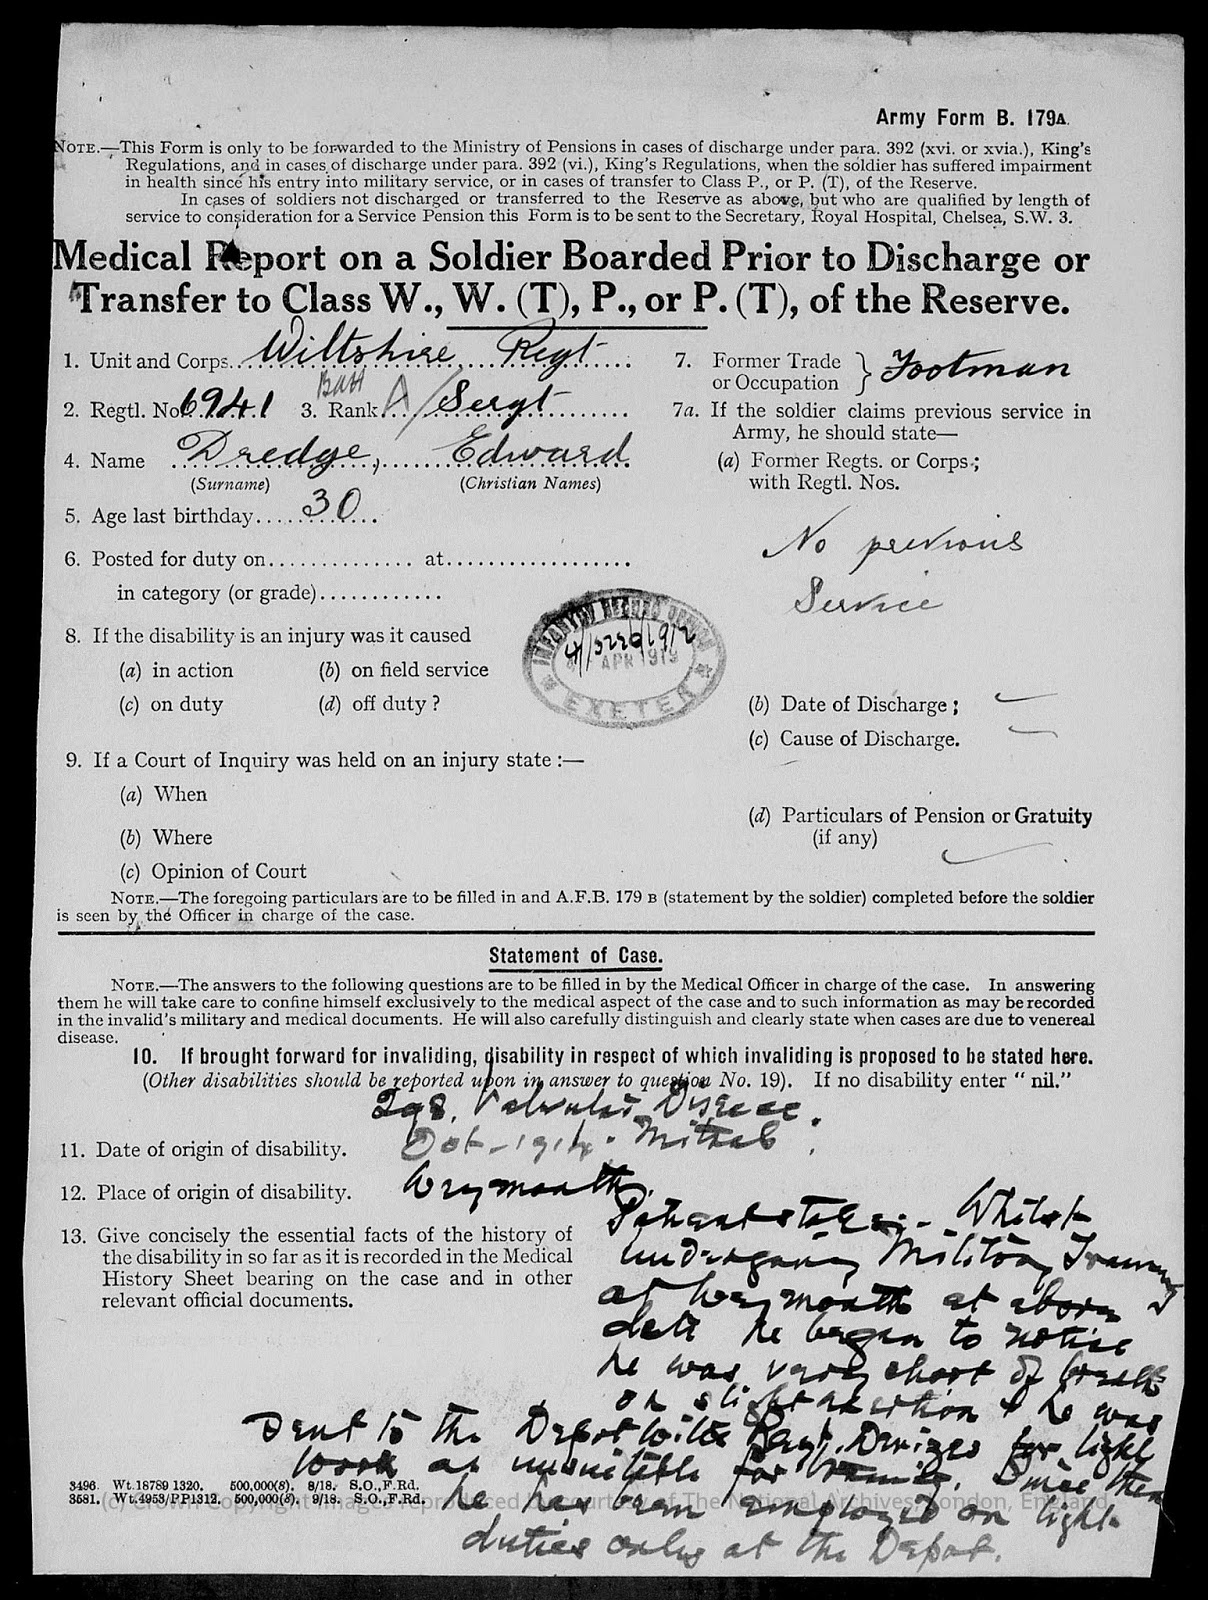 Army Form B.179a - medical report on a soldier